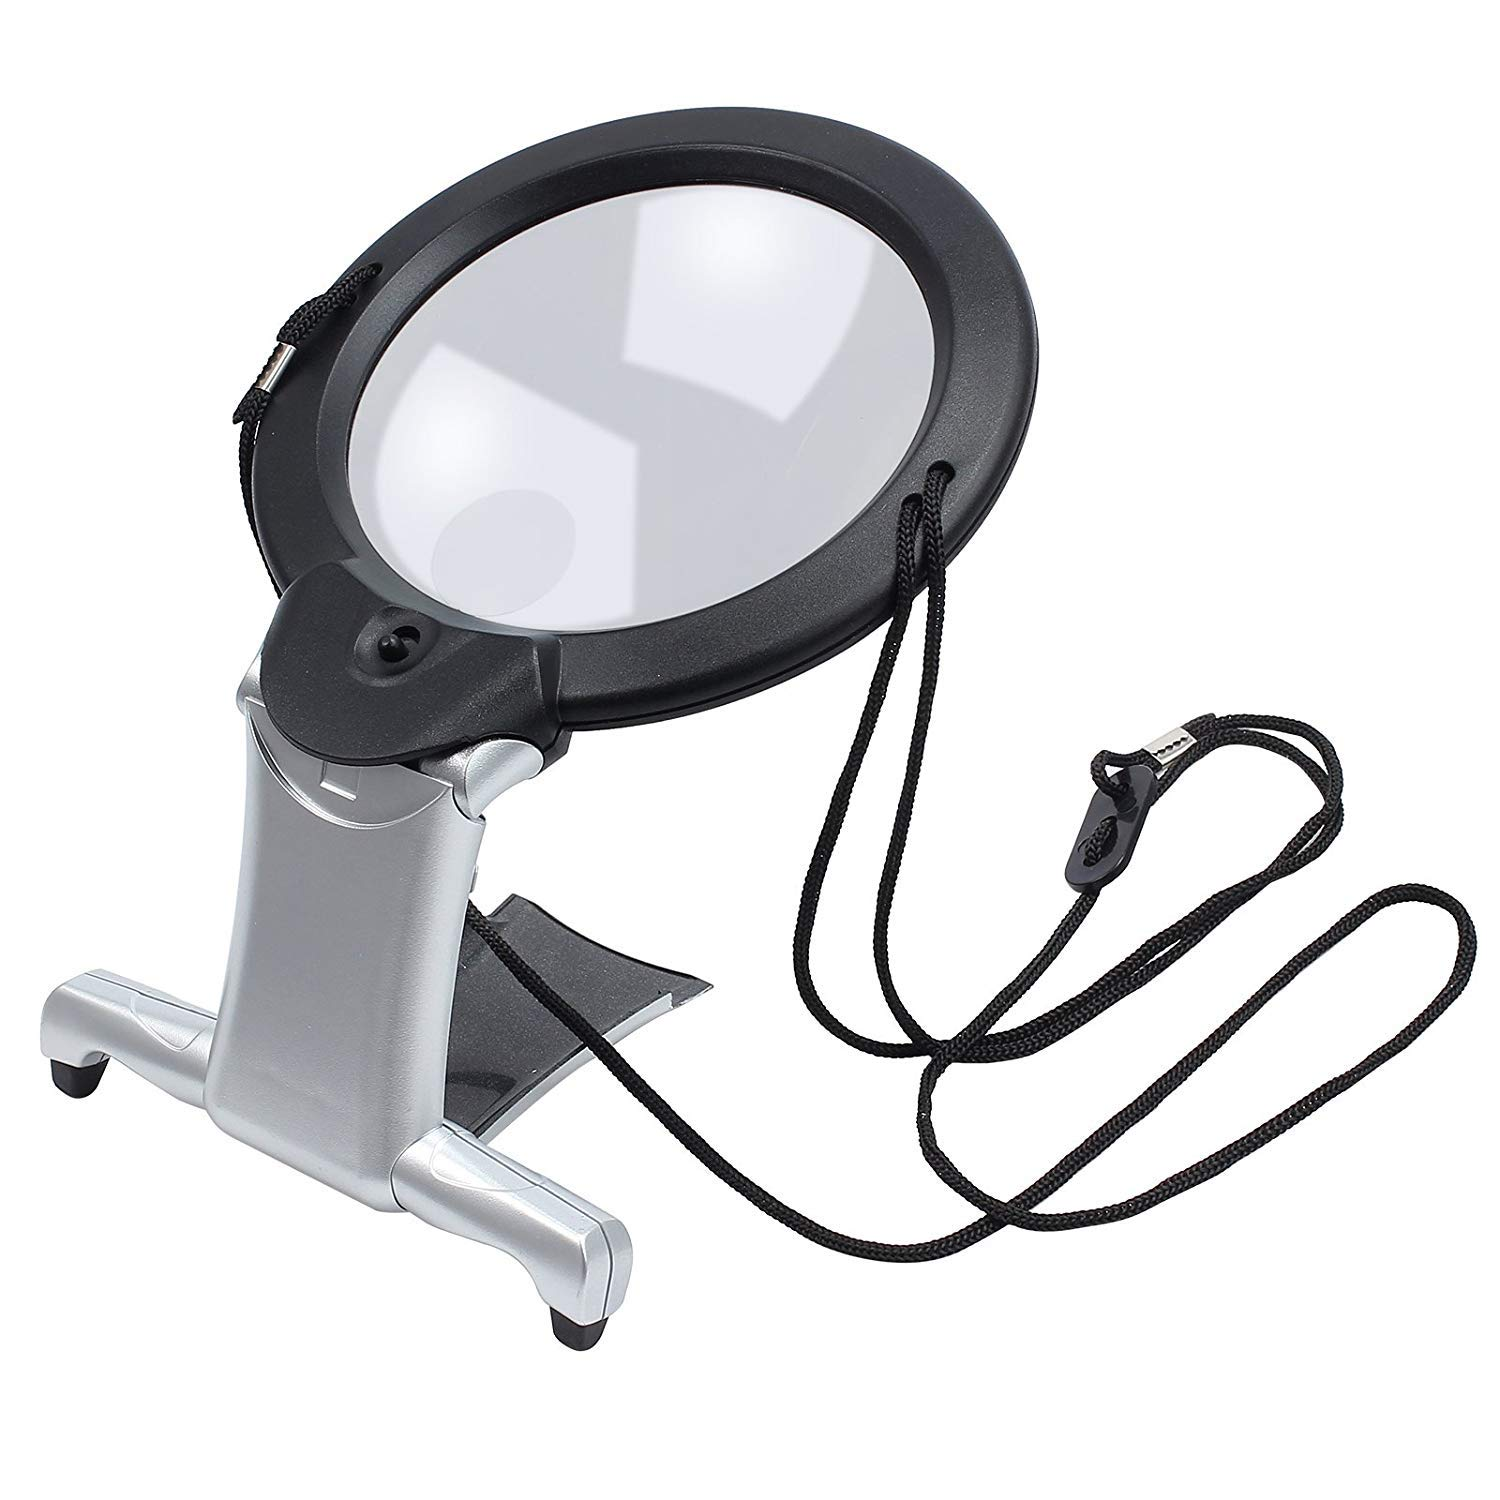 ElectroOptix 2 in 1 Magnifying Glass Hands Free Giant Large Magnifier with Led Illuminated for Low Vision and Visually Impaired Seniors Portable by ElectroOptix